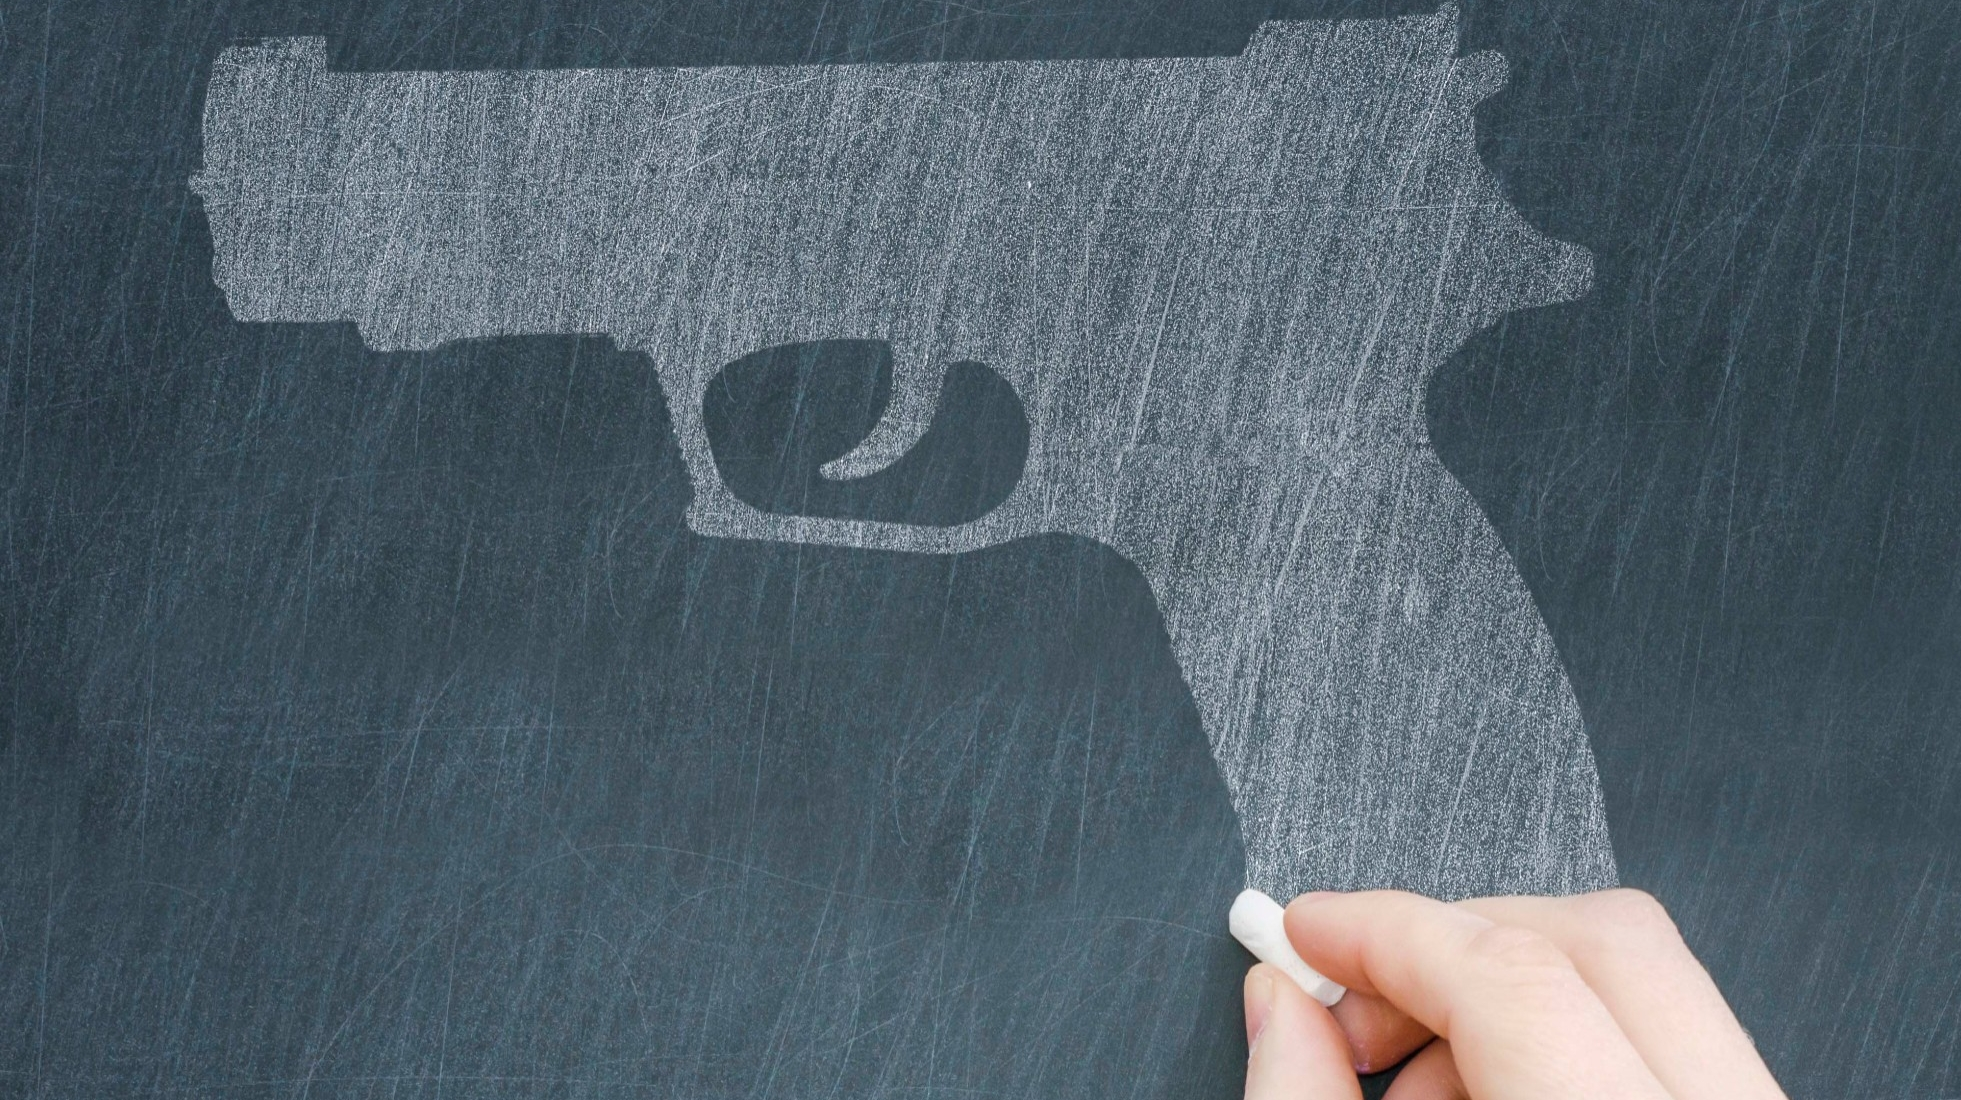 A hand holding a piece of chalk up to a drawing of a handgun on a chalkboard